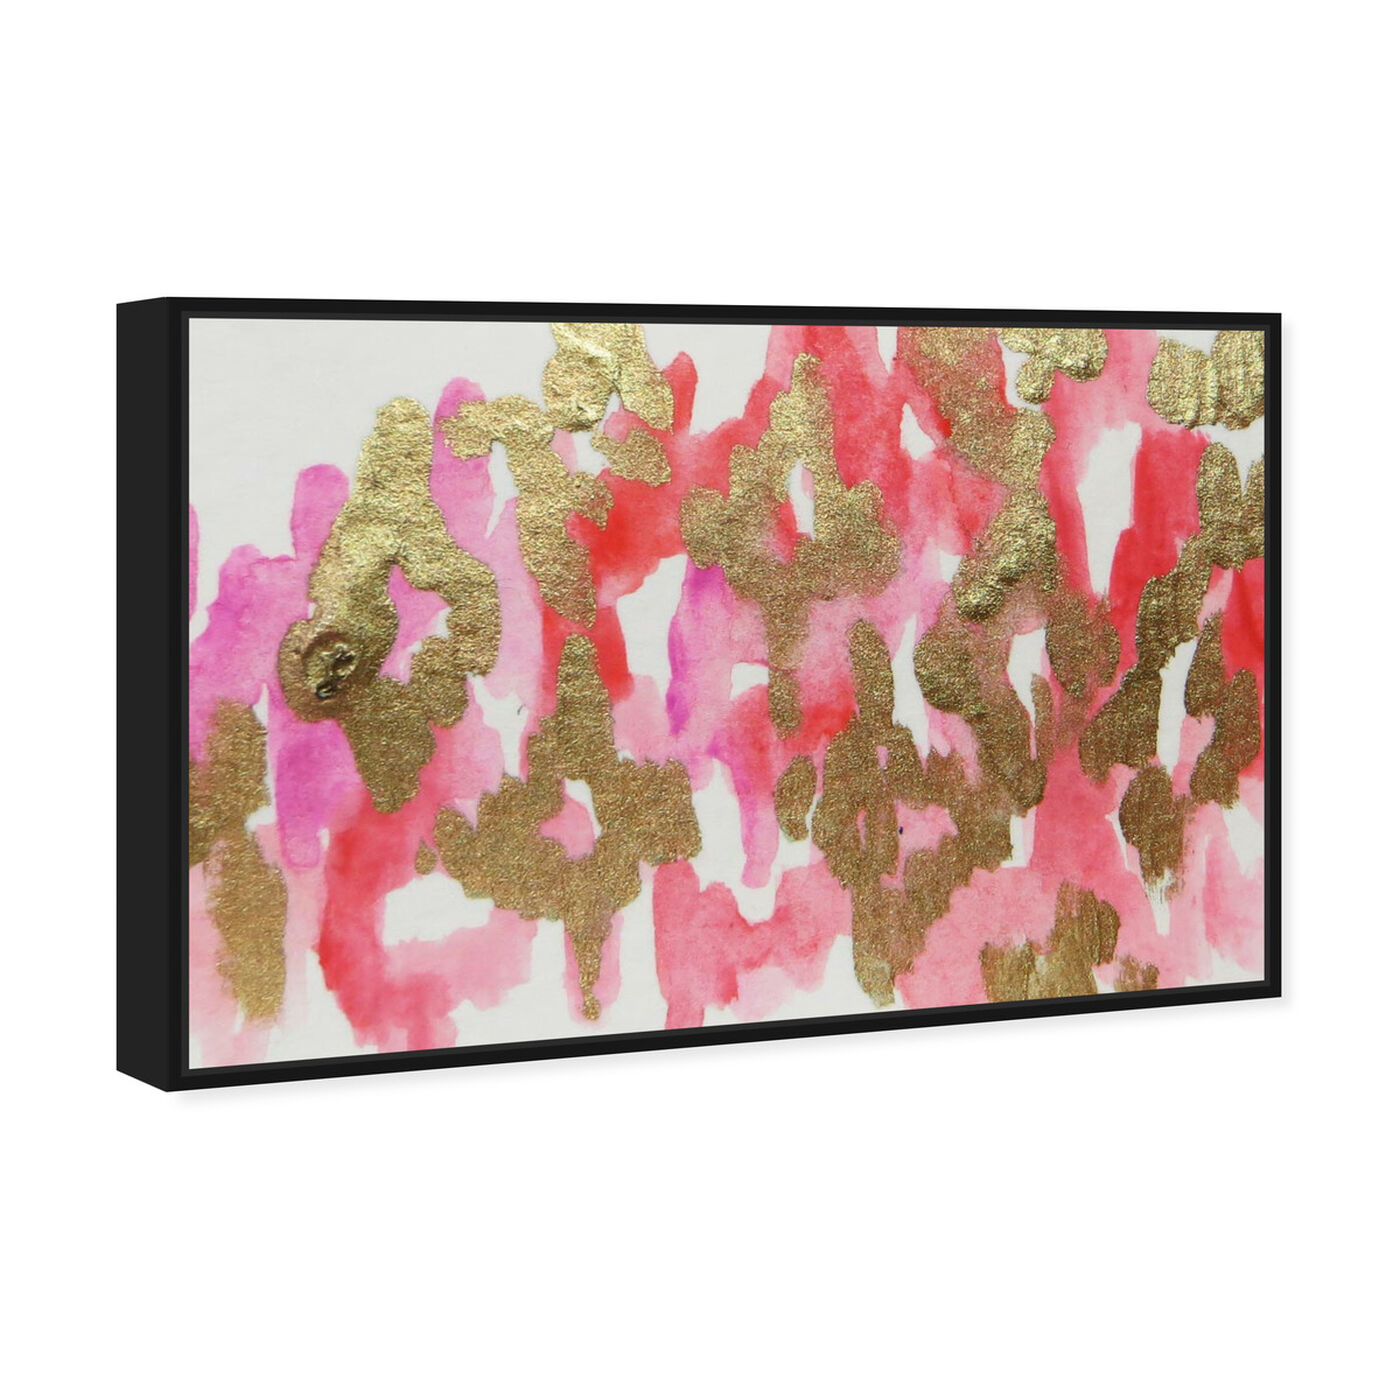 Angled view of Pink Palais - Signature Collection featuring abstract and paint art.